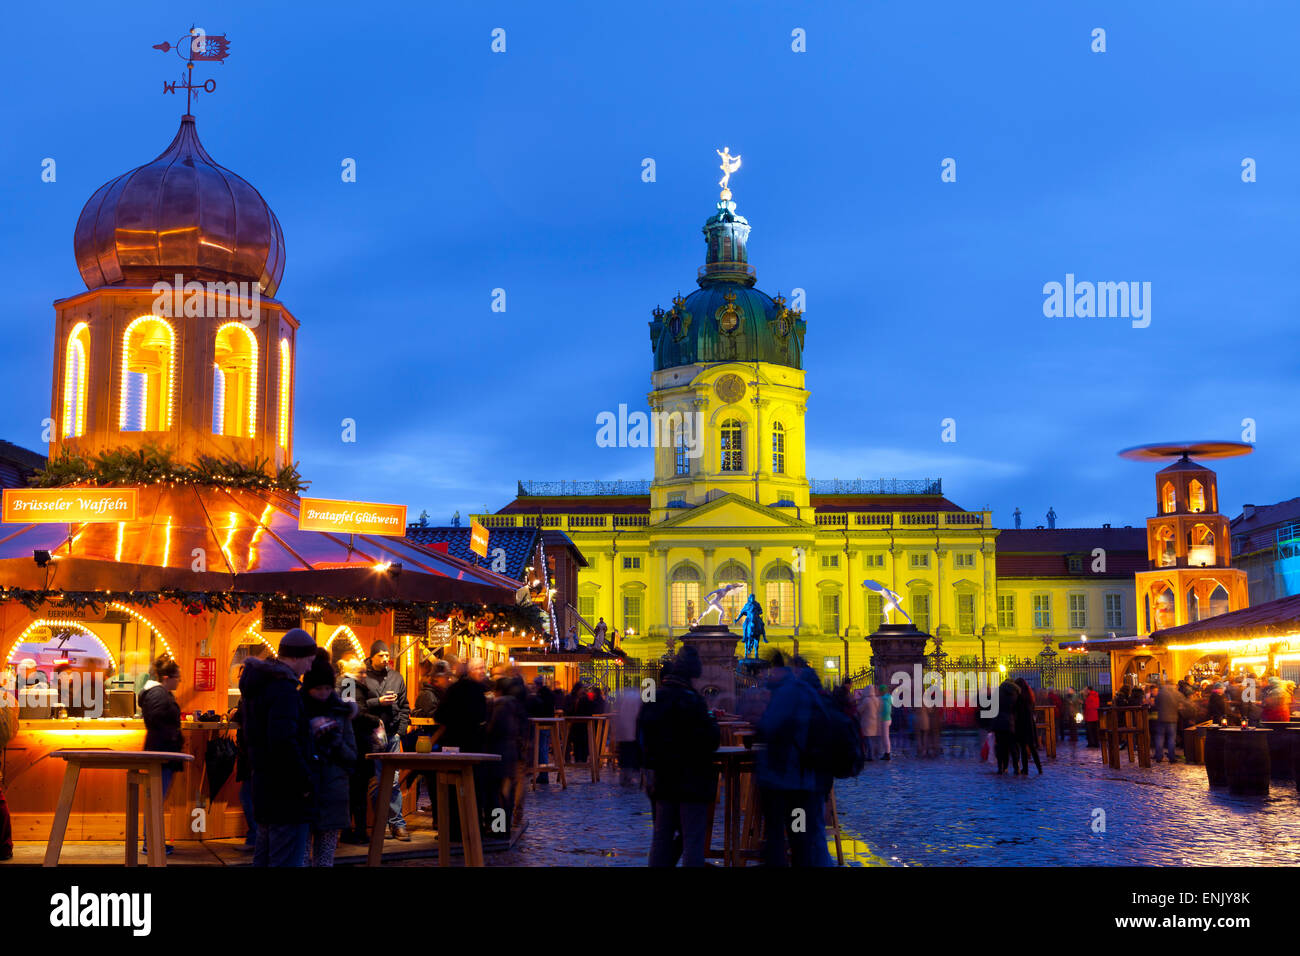 Christmas Market in front of Charlottenburg Palace, Berlin, Germany, Europe - Stock Image